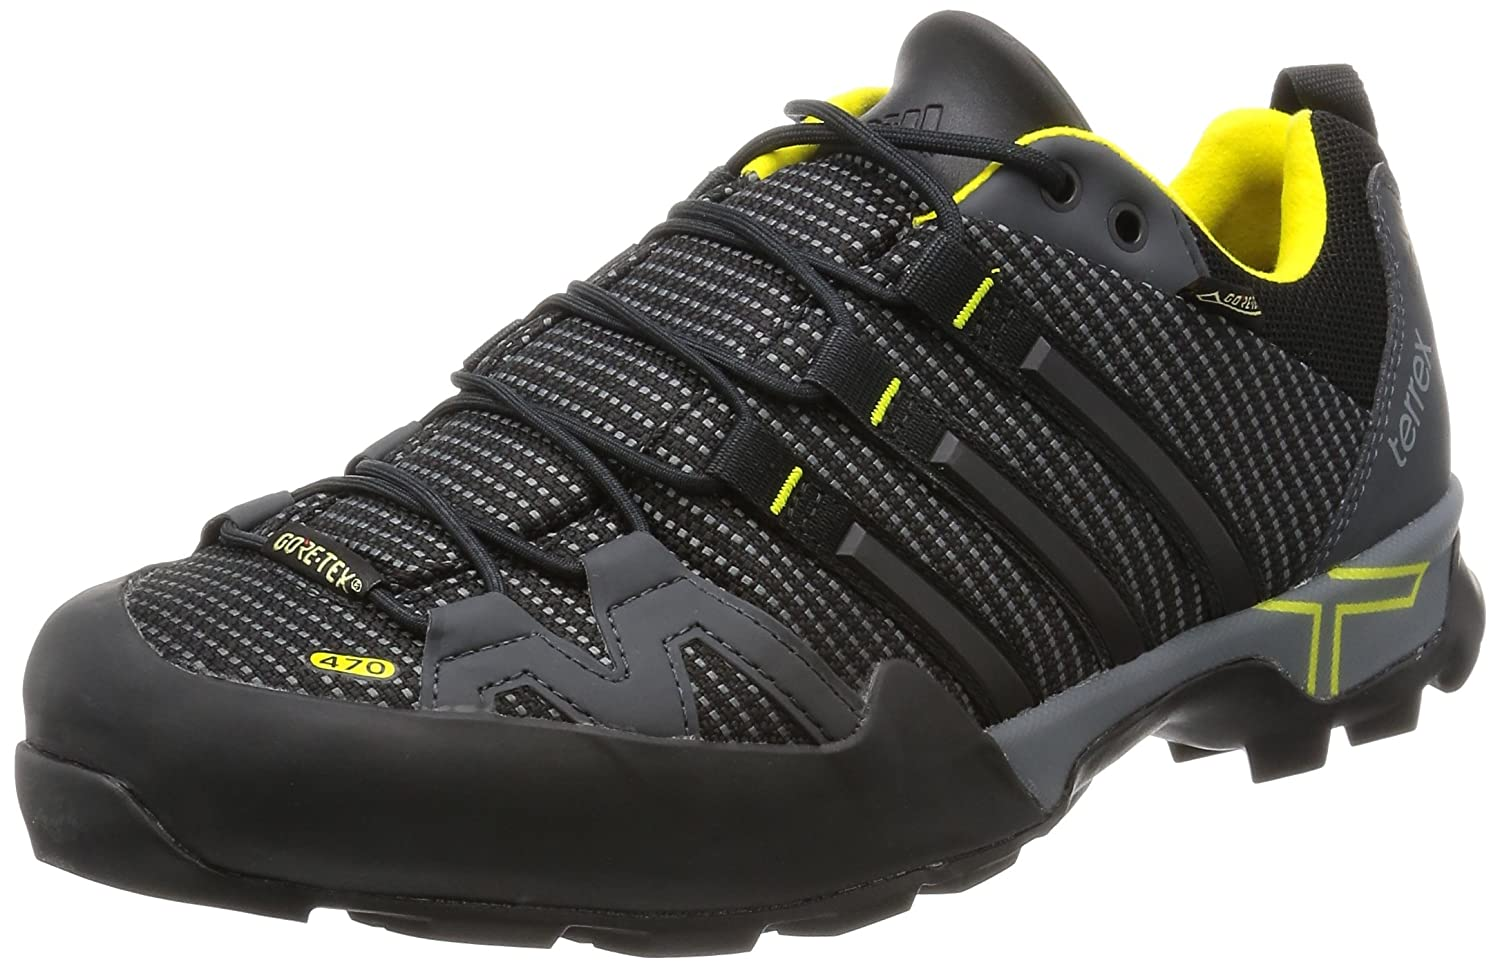 Adidas Terrex Scope GTX Walking Shoes - AW16